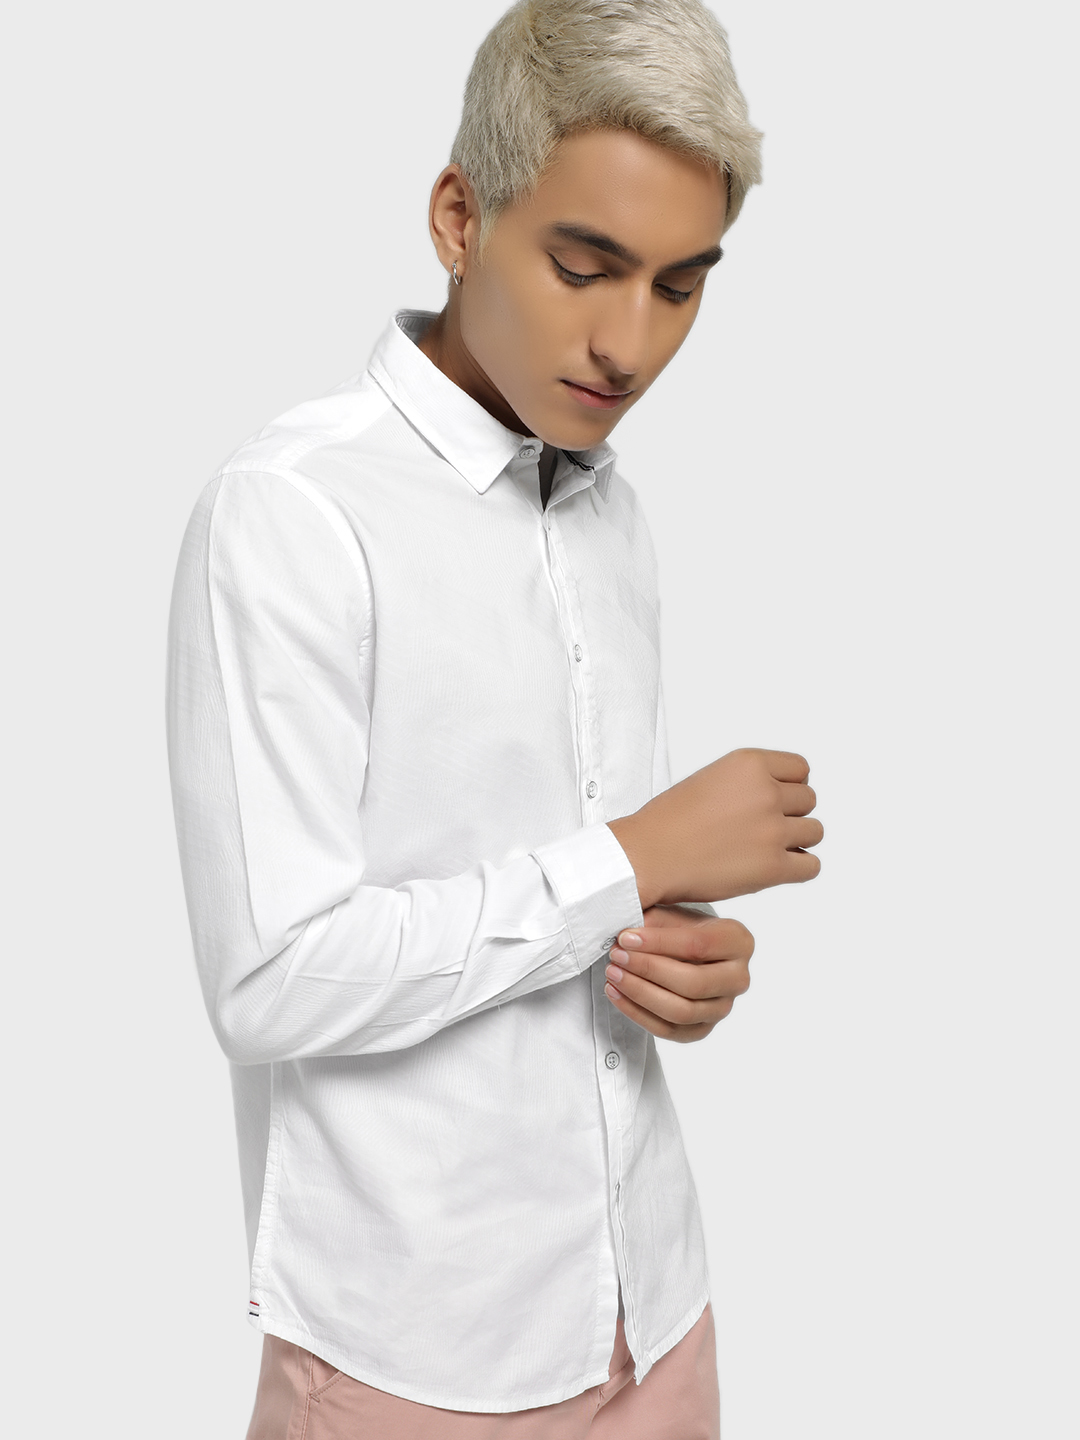 Lee Cooper White Self-Design Long Sleeve Shirt 1